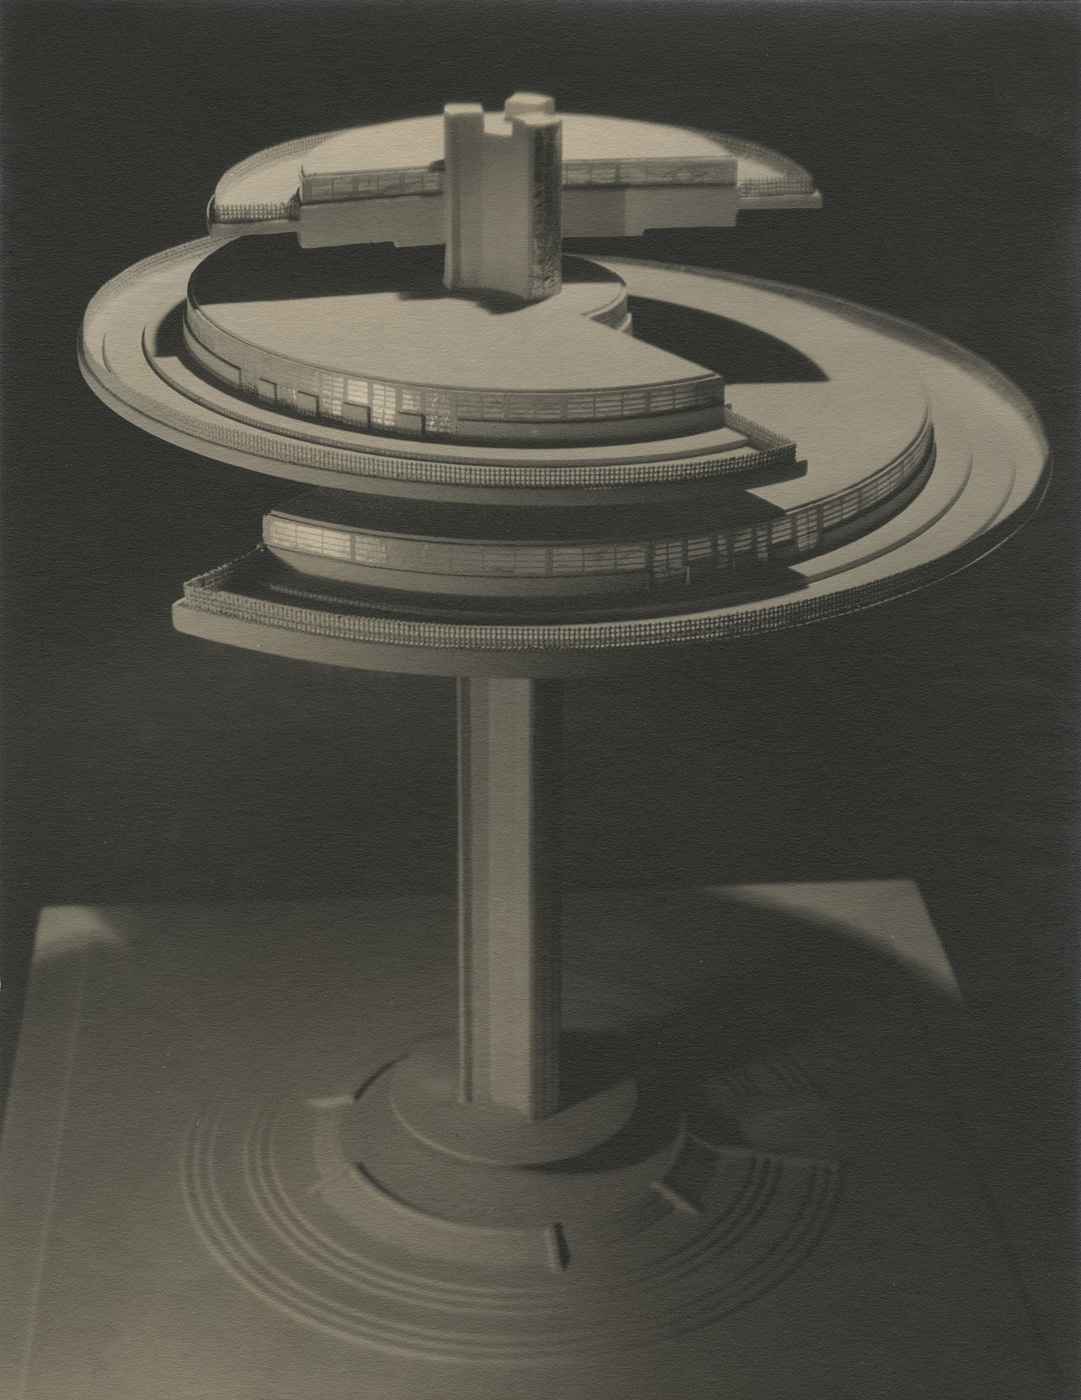 Maurice Goldberg. Norman Bel Geddes's model of the Aerial Restaurant, ca. 1930. Image courtesy of the Edith Lutyens and Norman Bel Geddes Foundation / Harry Ransom Center